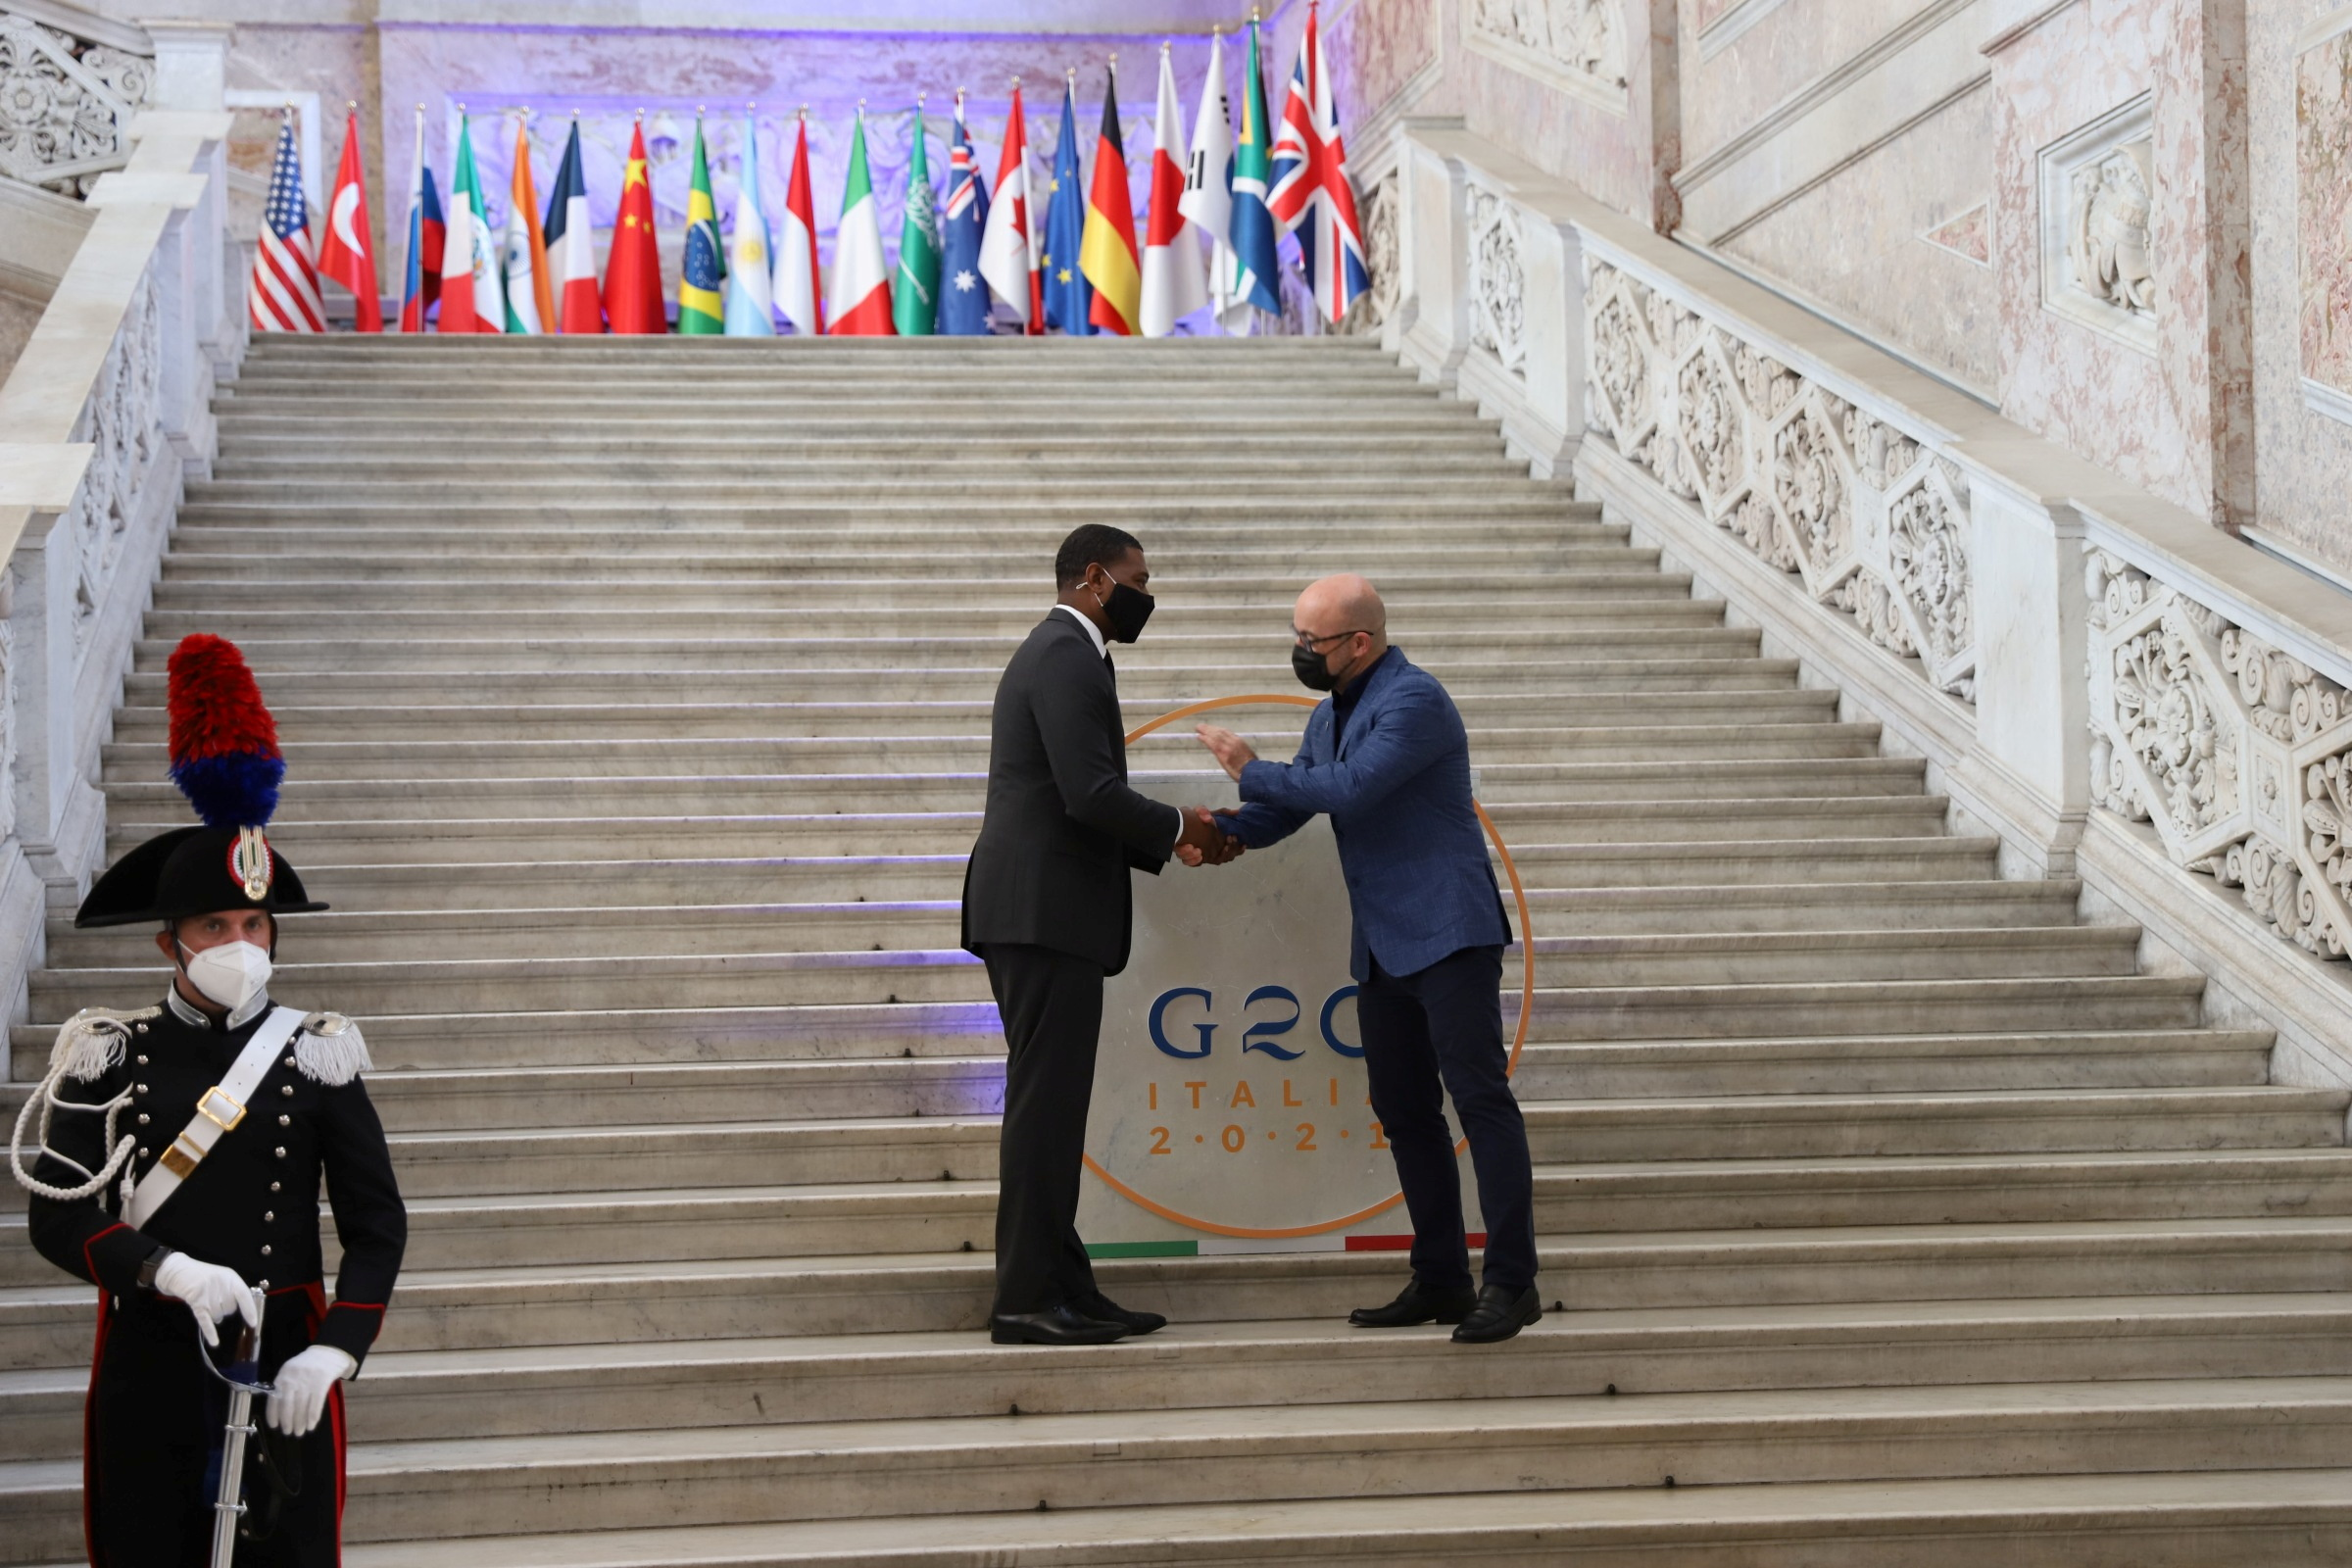 U.S. Environmental Protection Agency Administrator Michael Regan is greeted by Italy's Ecological Transition Minister Roberto Cingolani at the start of the G20 Environment, Climate and Energy Ministers' Meeting in Naples, Italy, July 22, 2021. G20Italy/Handout via REUTERS